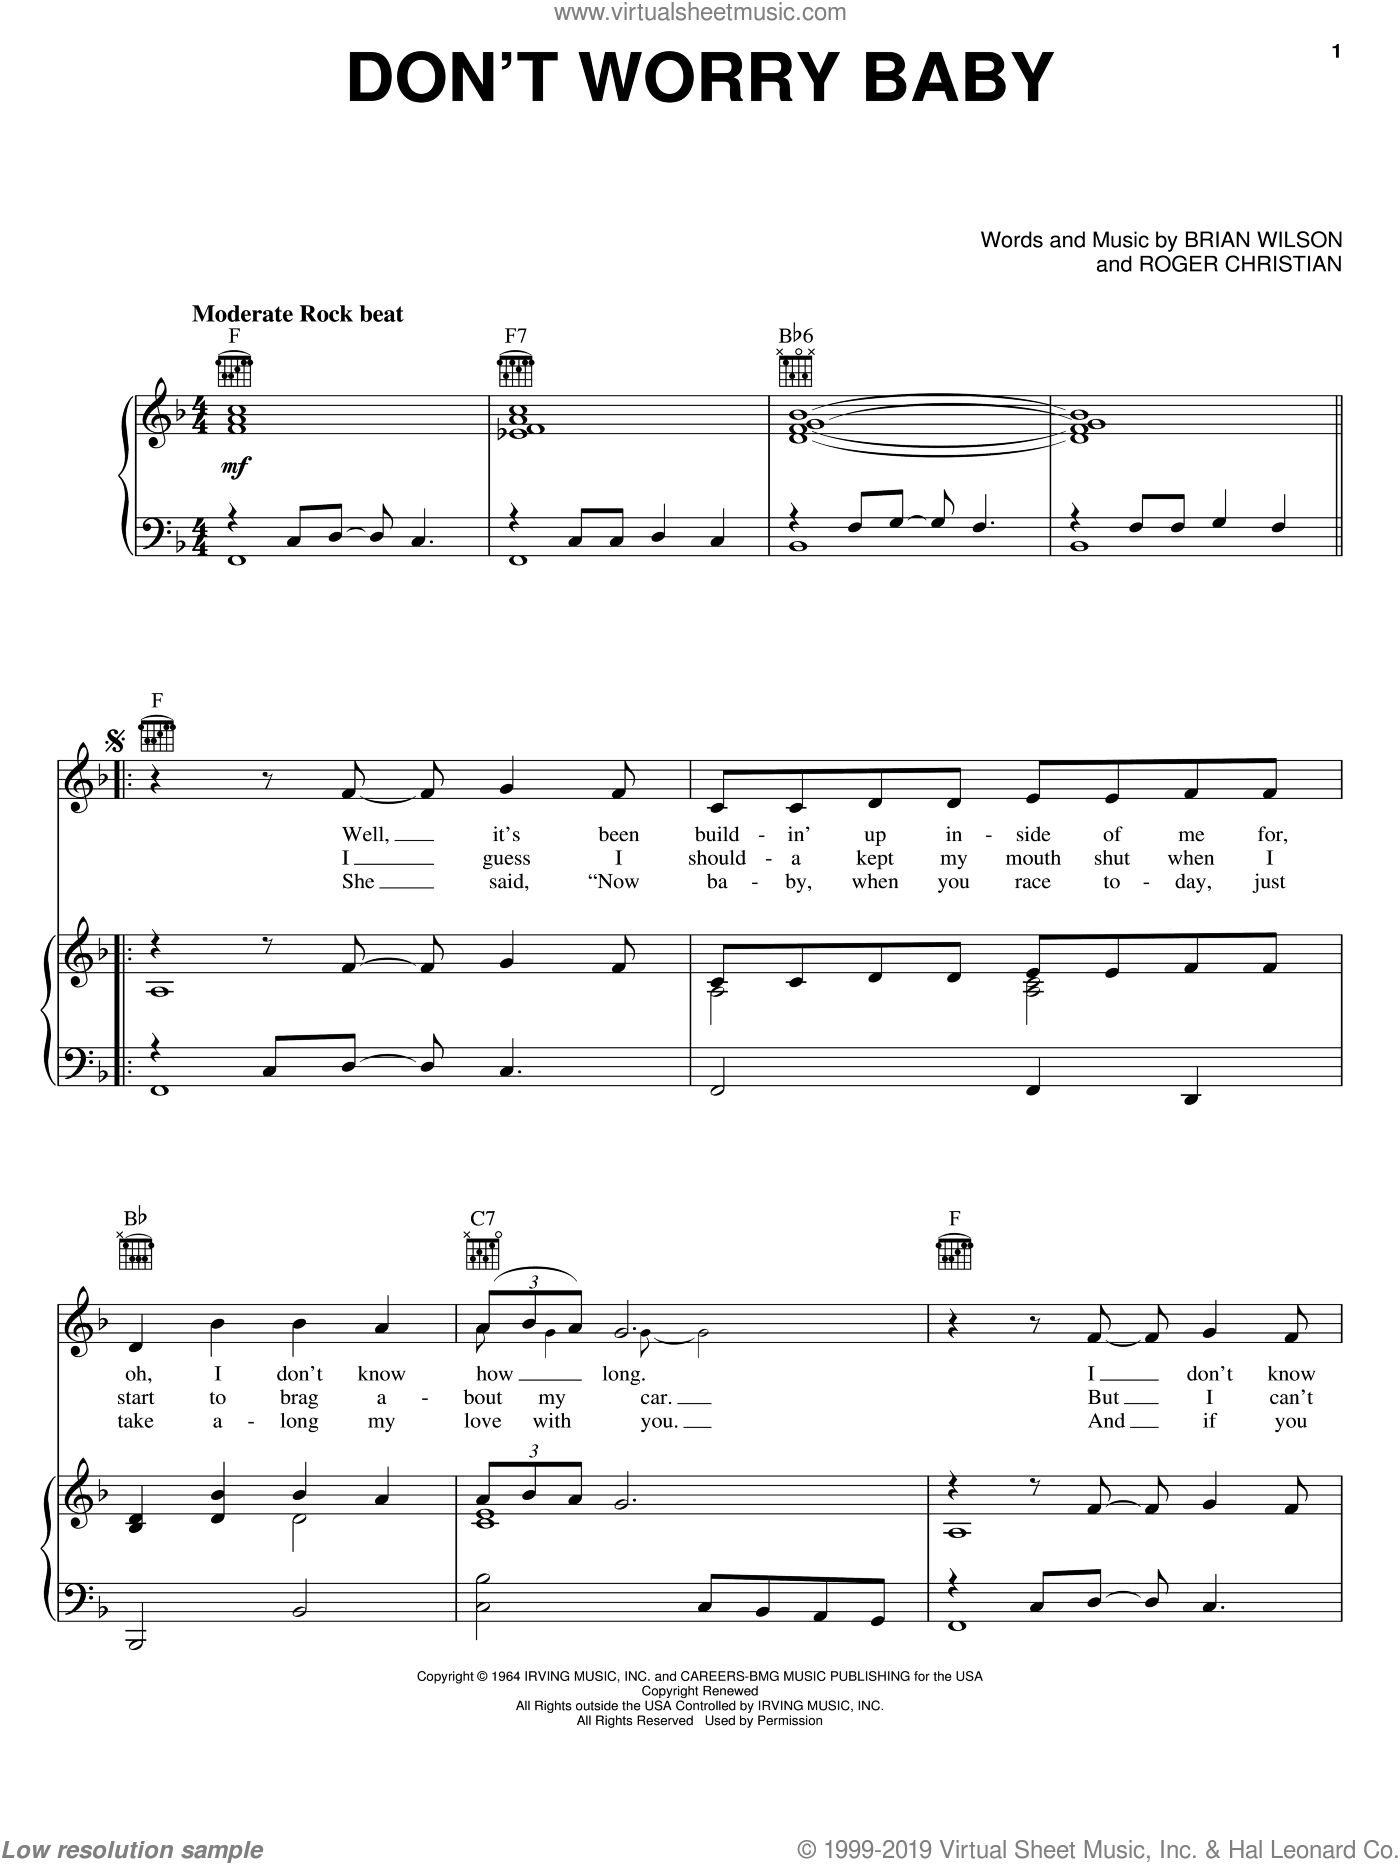 Don't Worry Baby sheet music for voice, piano or guitar by The Beach Boys, Lorrie Morgan, The Beach Boys featuring Lorrie Morgan, Brian Wilson and Roger Christian, intermediate skill level